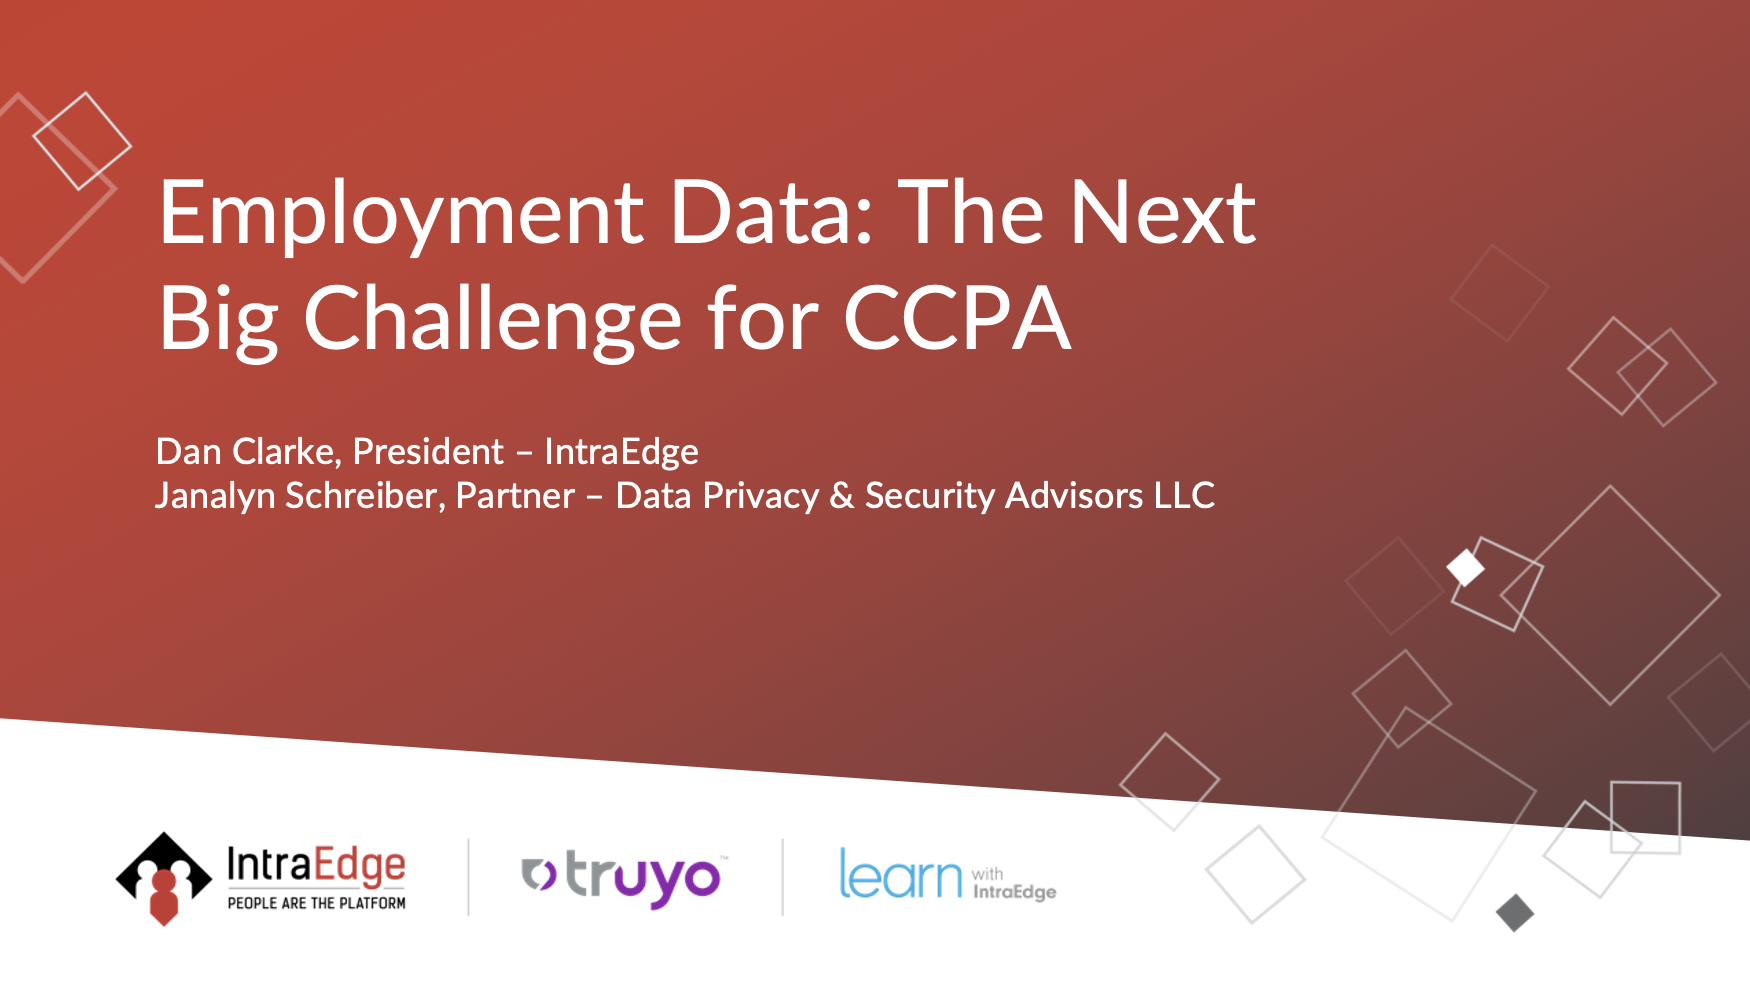 Employment Data: The Next Big Challenge for CCPA